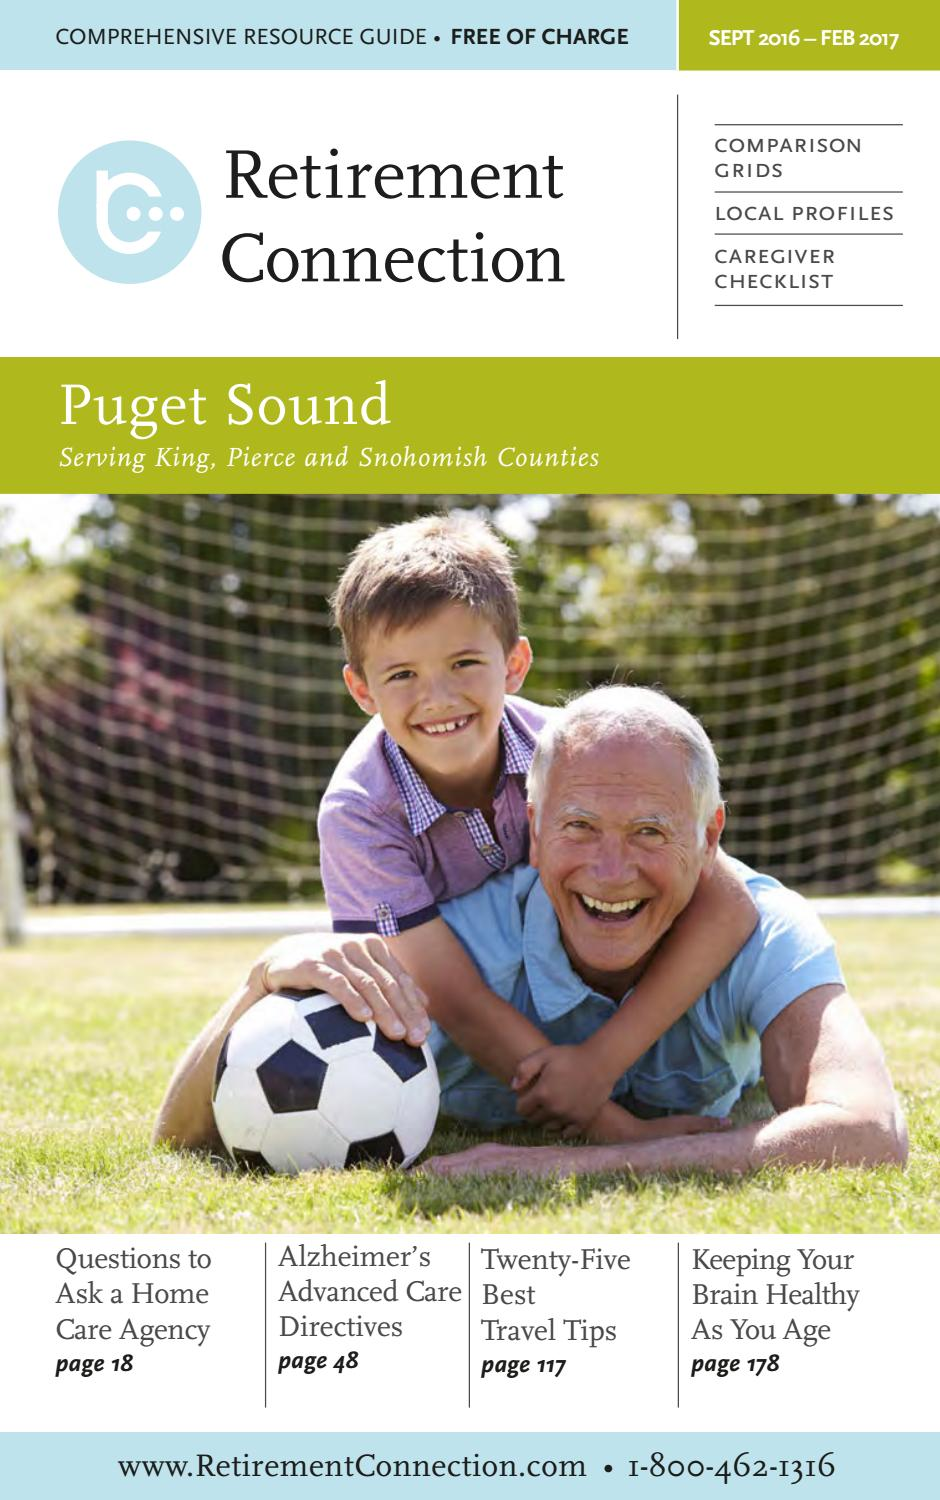 September 2016 Retirement Connection Guide Puget Sound By Retirement  Connection  Issuu